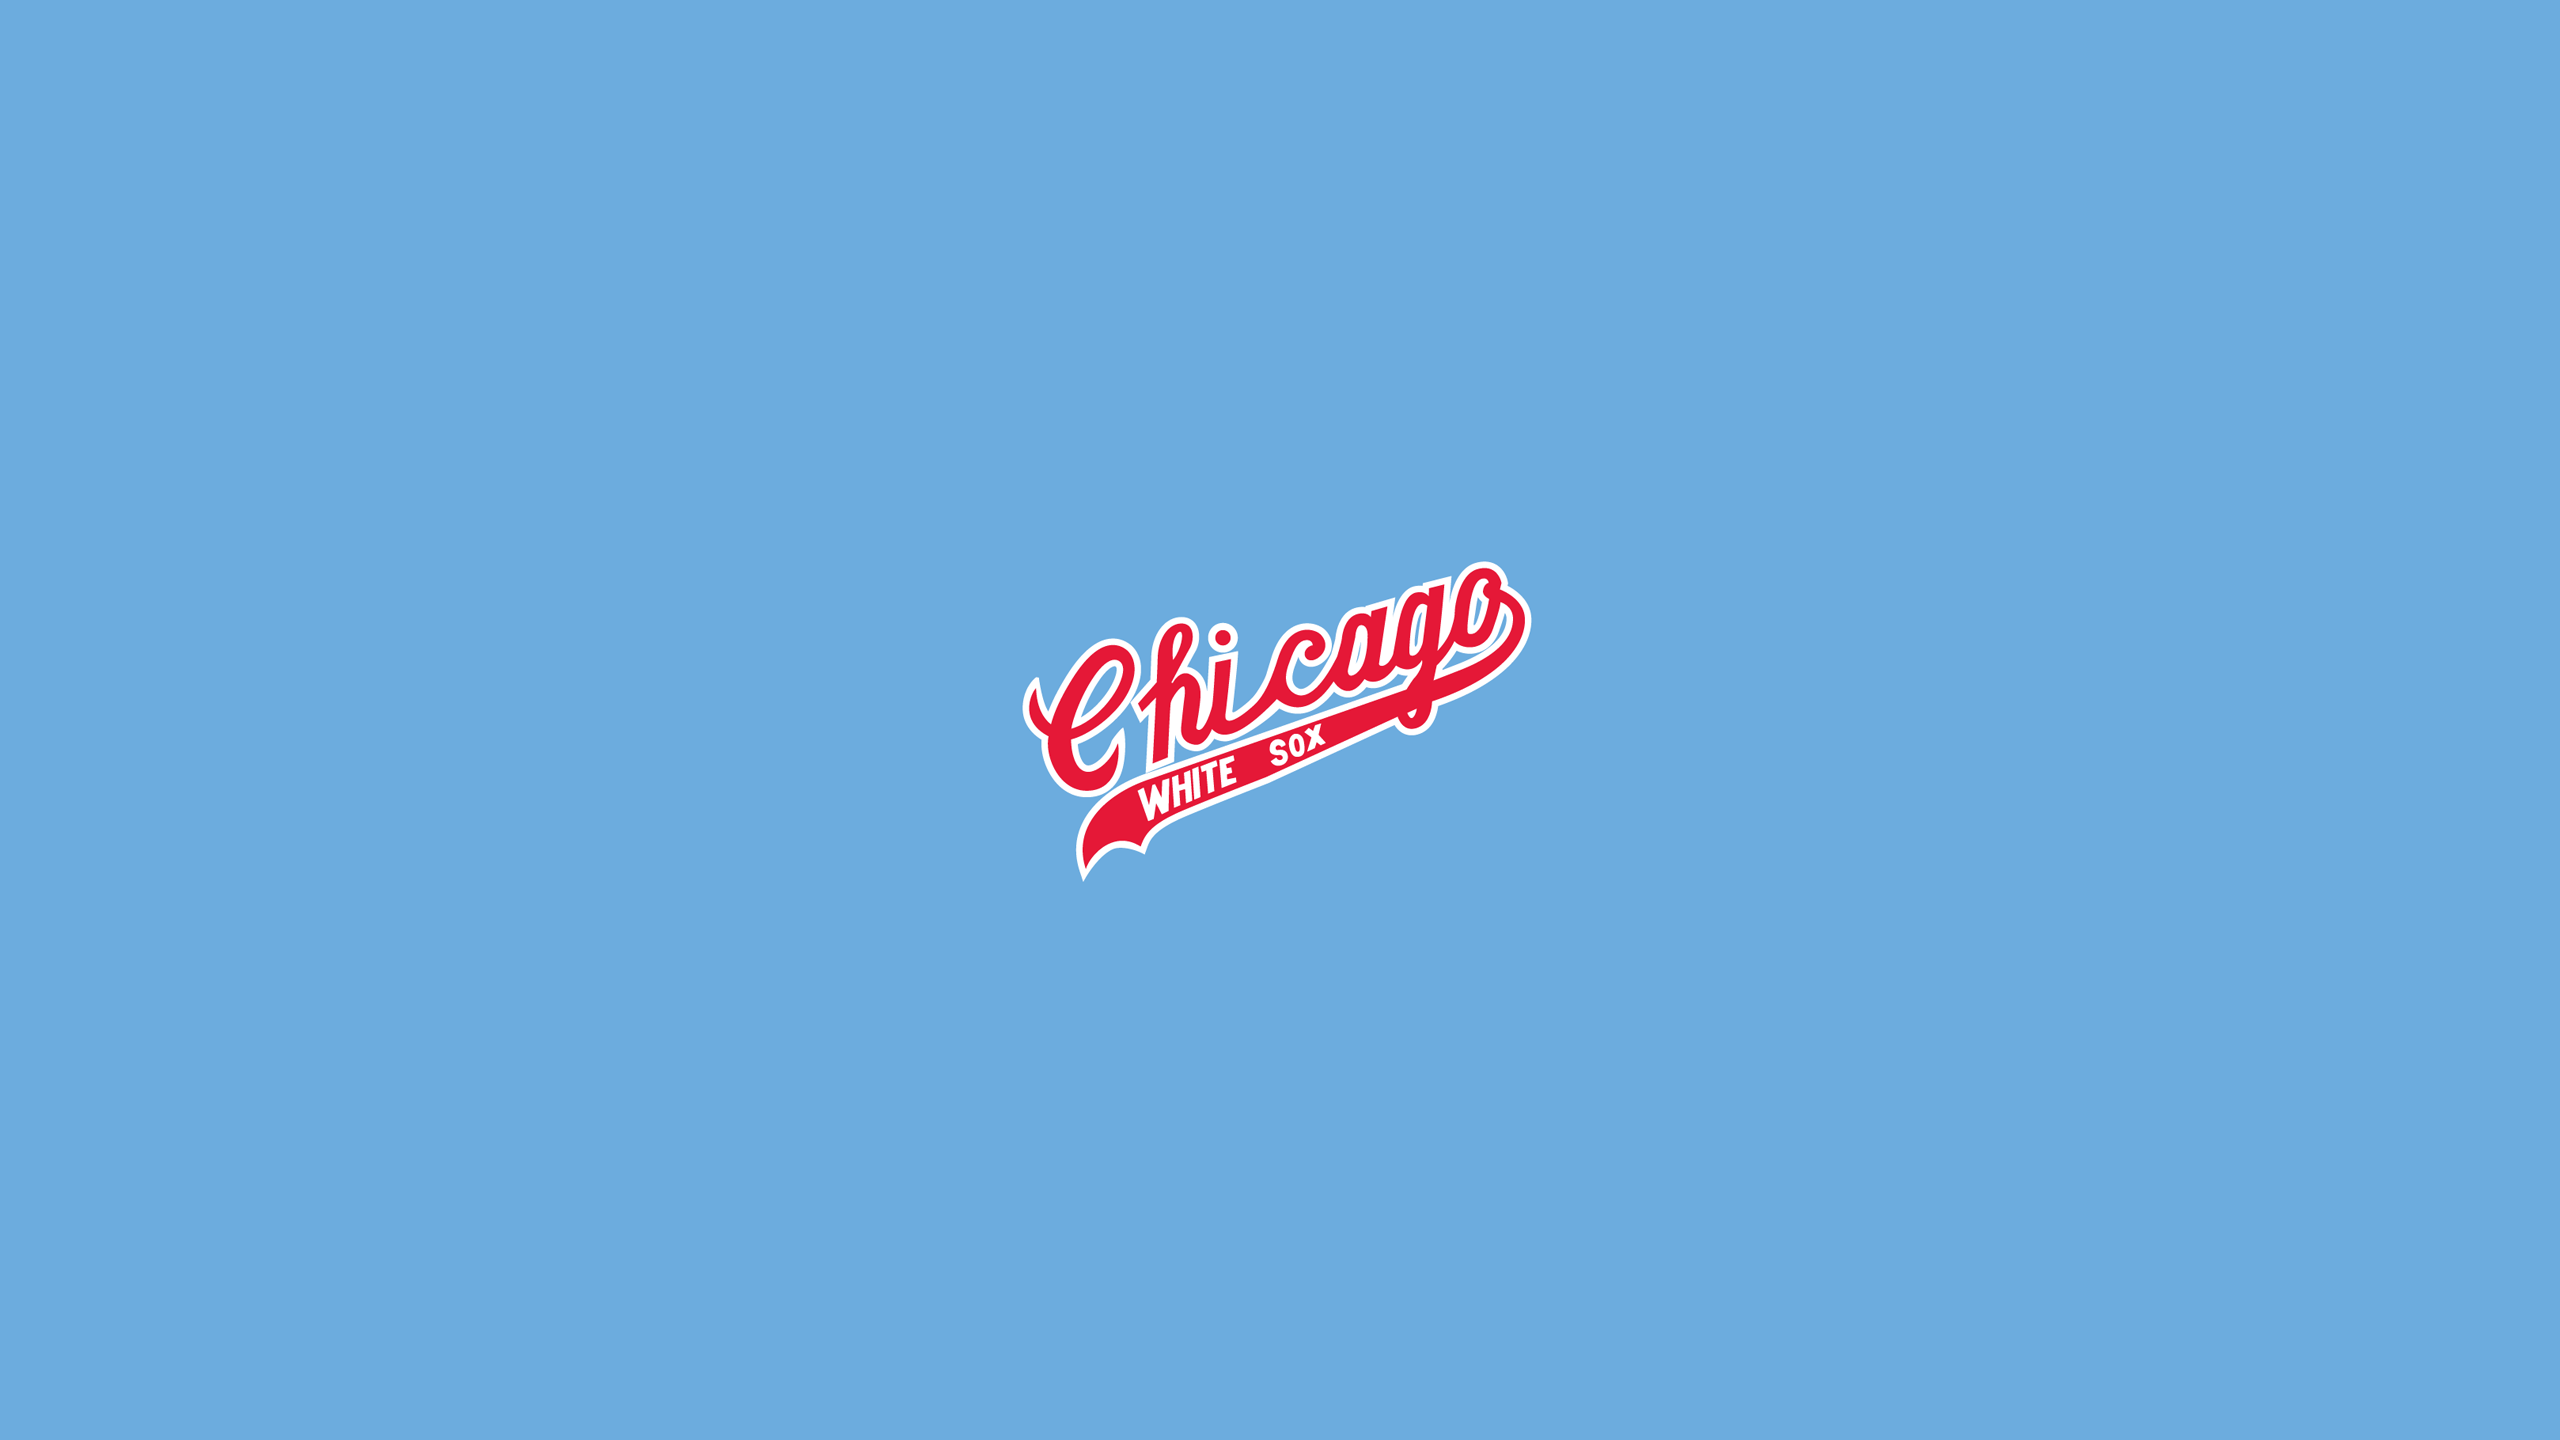 Chicago White Sox (1970s - Baby Blue)